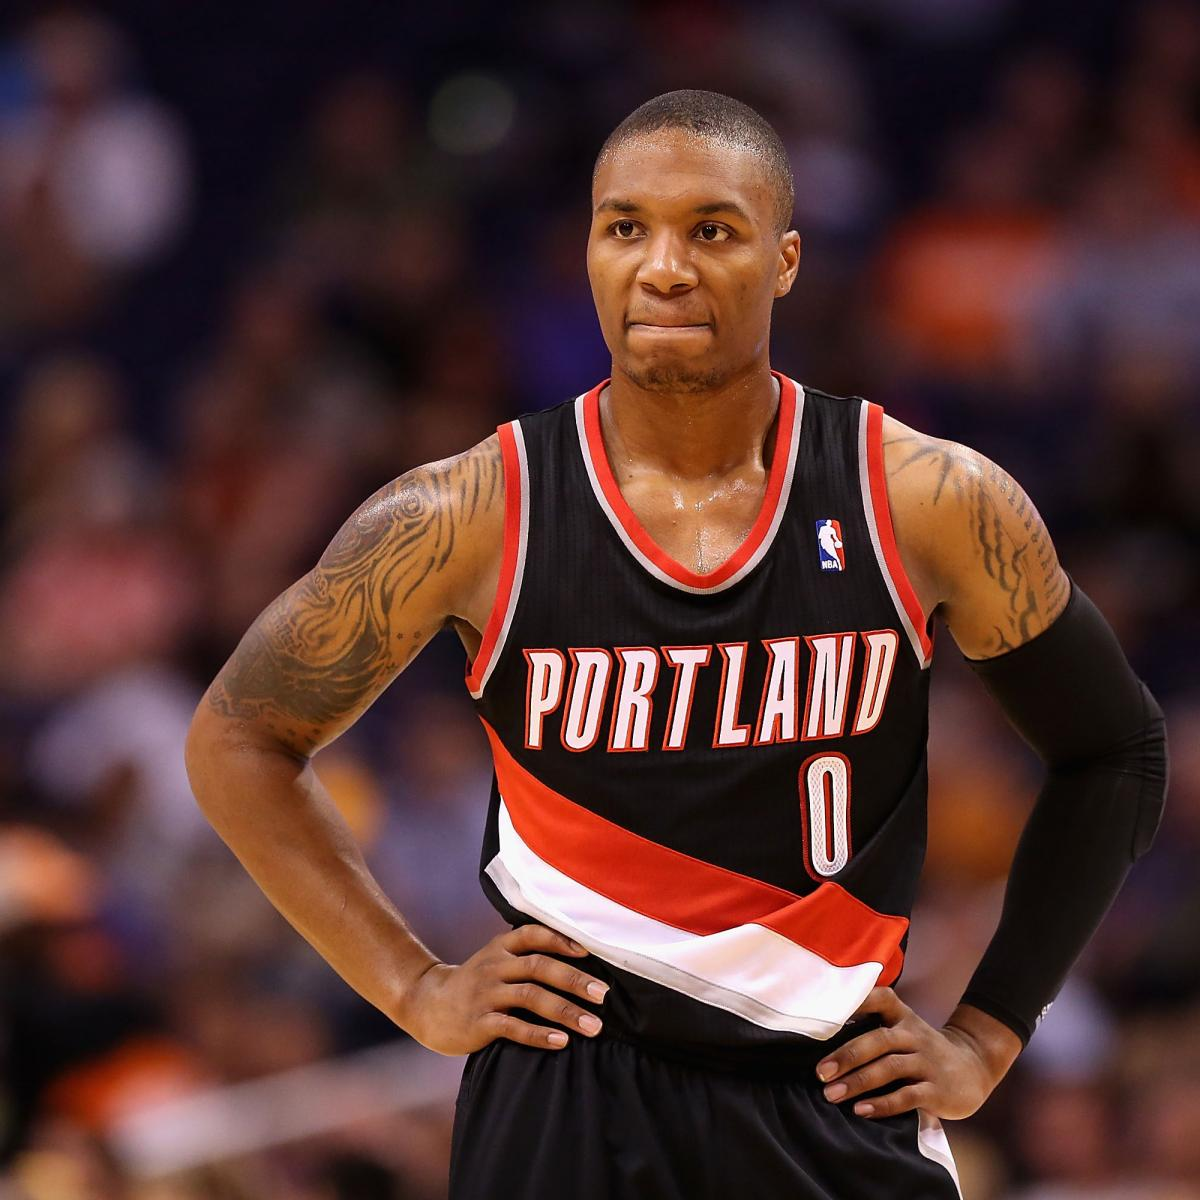 Damian Lillard: Damian Lillard's Historic Start Continues In Win Over